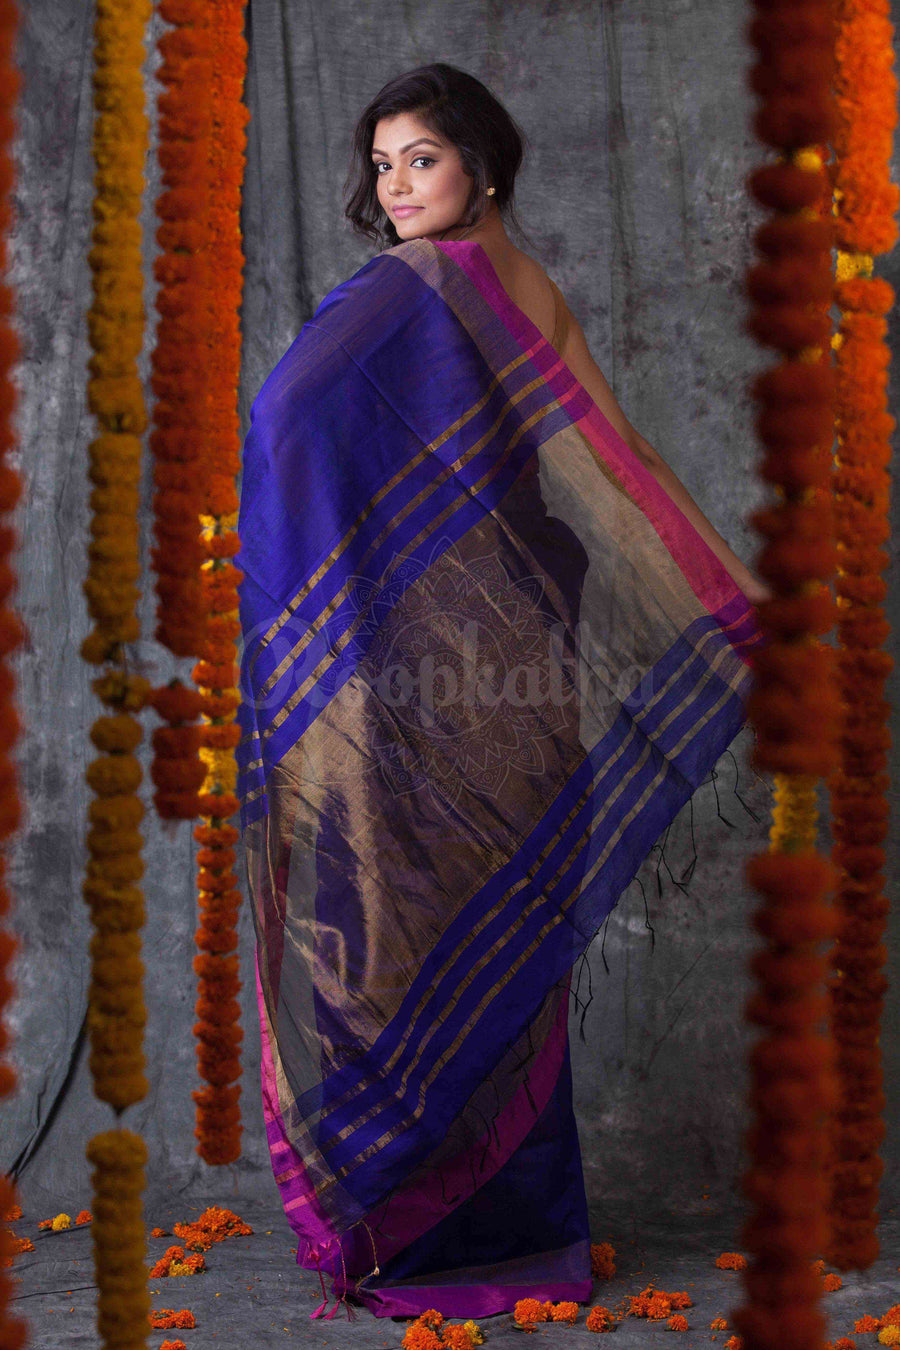 Indigo Blue Blended Cotton Saree With Panel Border Akasha Roopkatha - A Story of Art